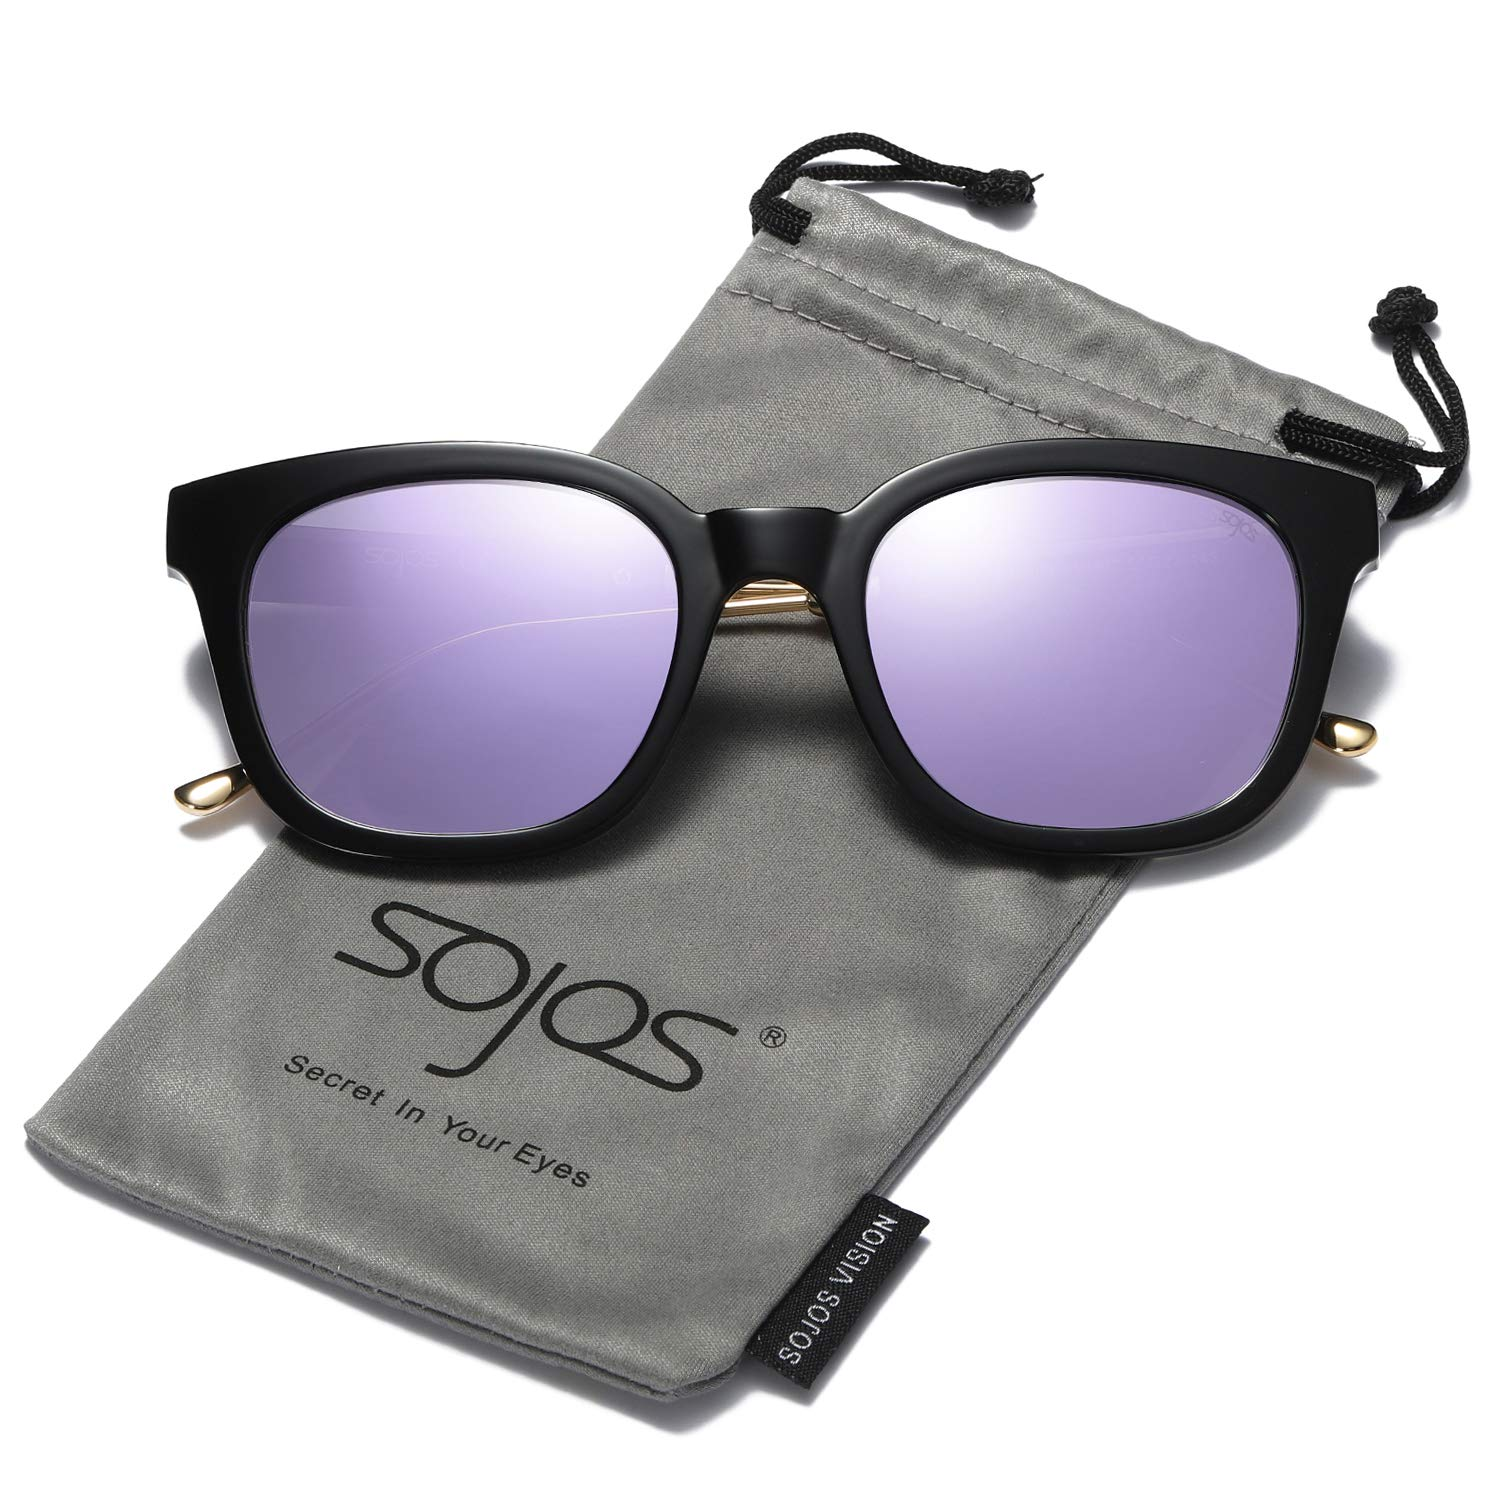 SOJOS Classic Polarized Sunglasses for Women Men Mirrored Lens SJ2050 with Black Frame/Purple Mirrored Polarized Lens